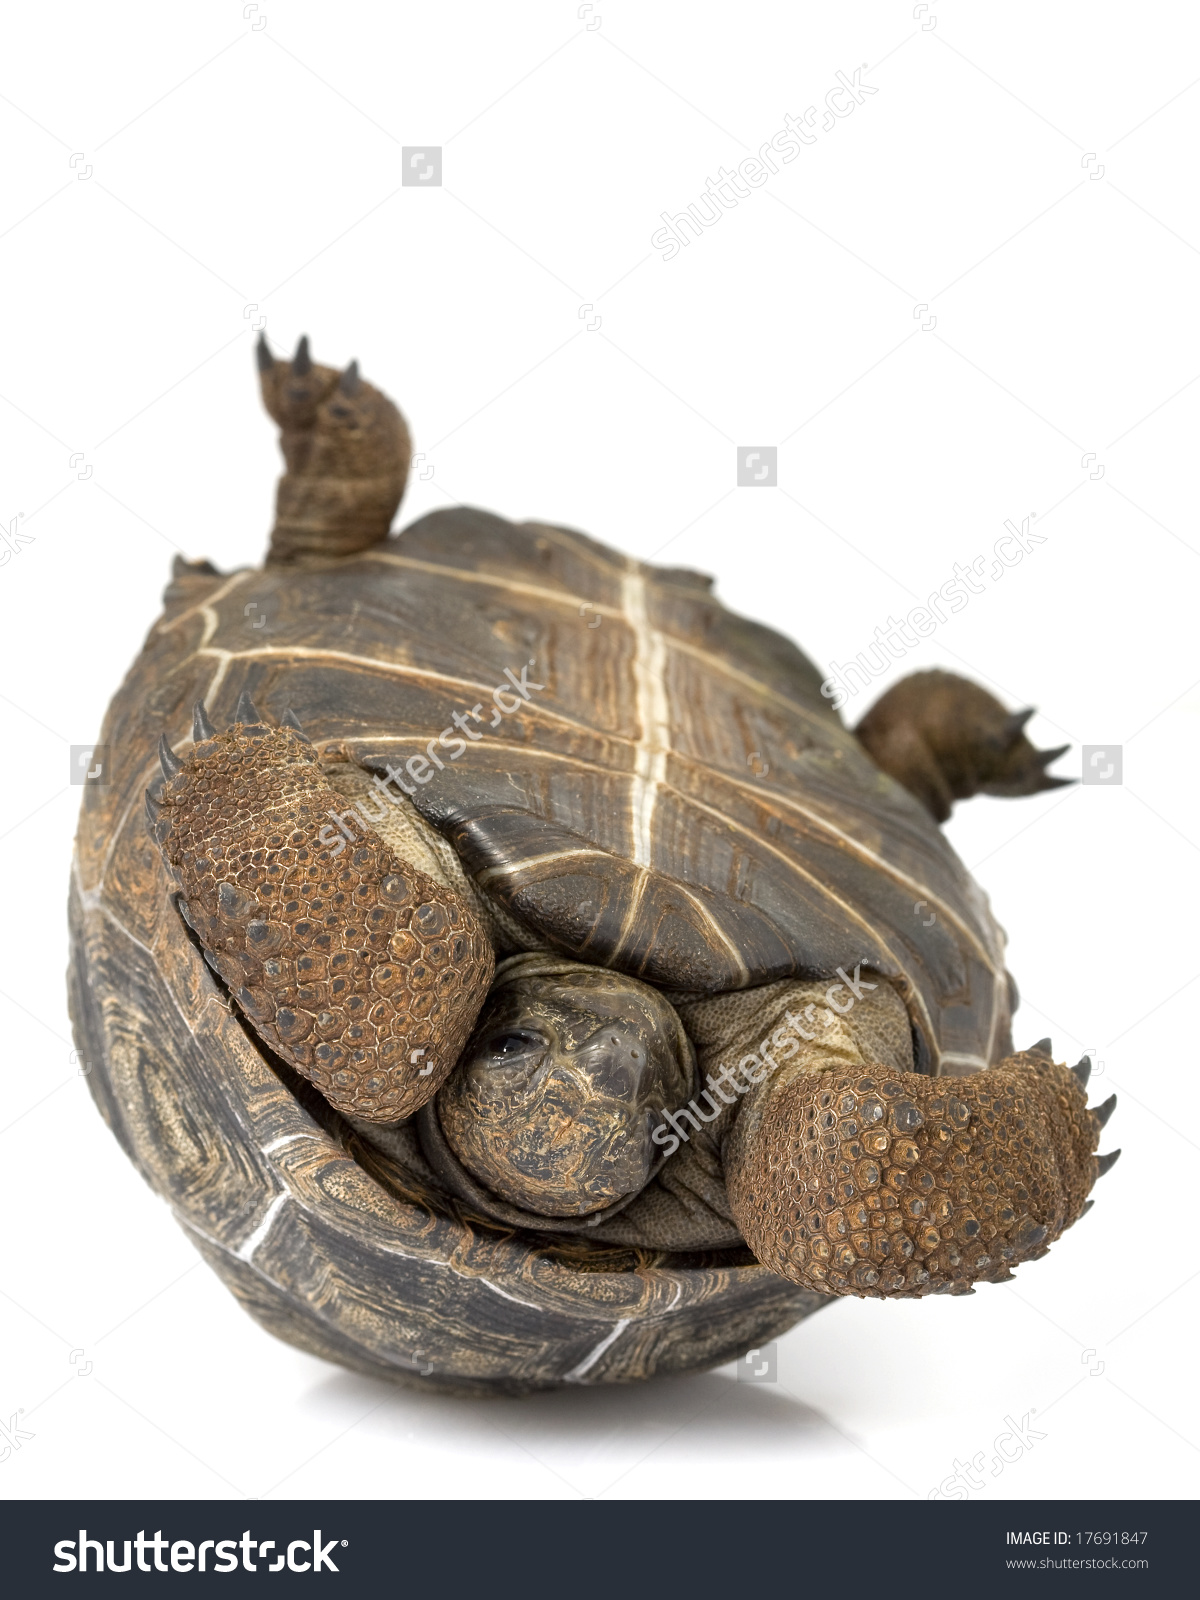 Aldabra Giant Tortoise Geochelone Gigantea On Stock Photo 17691847.